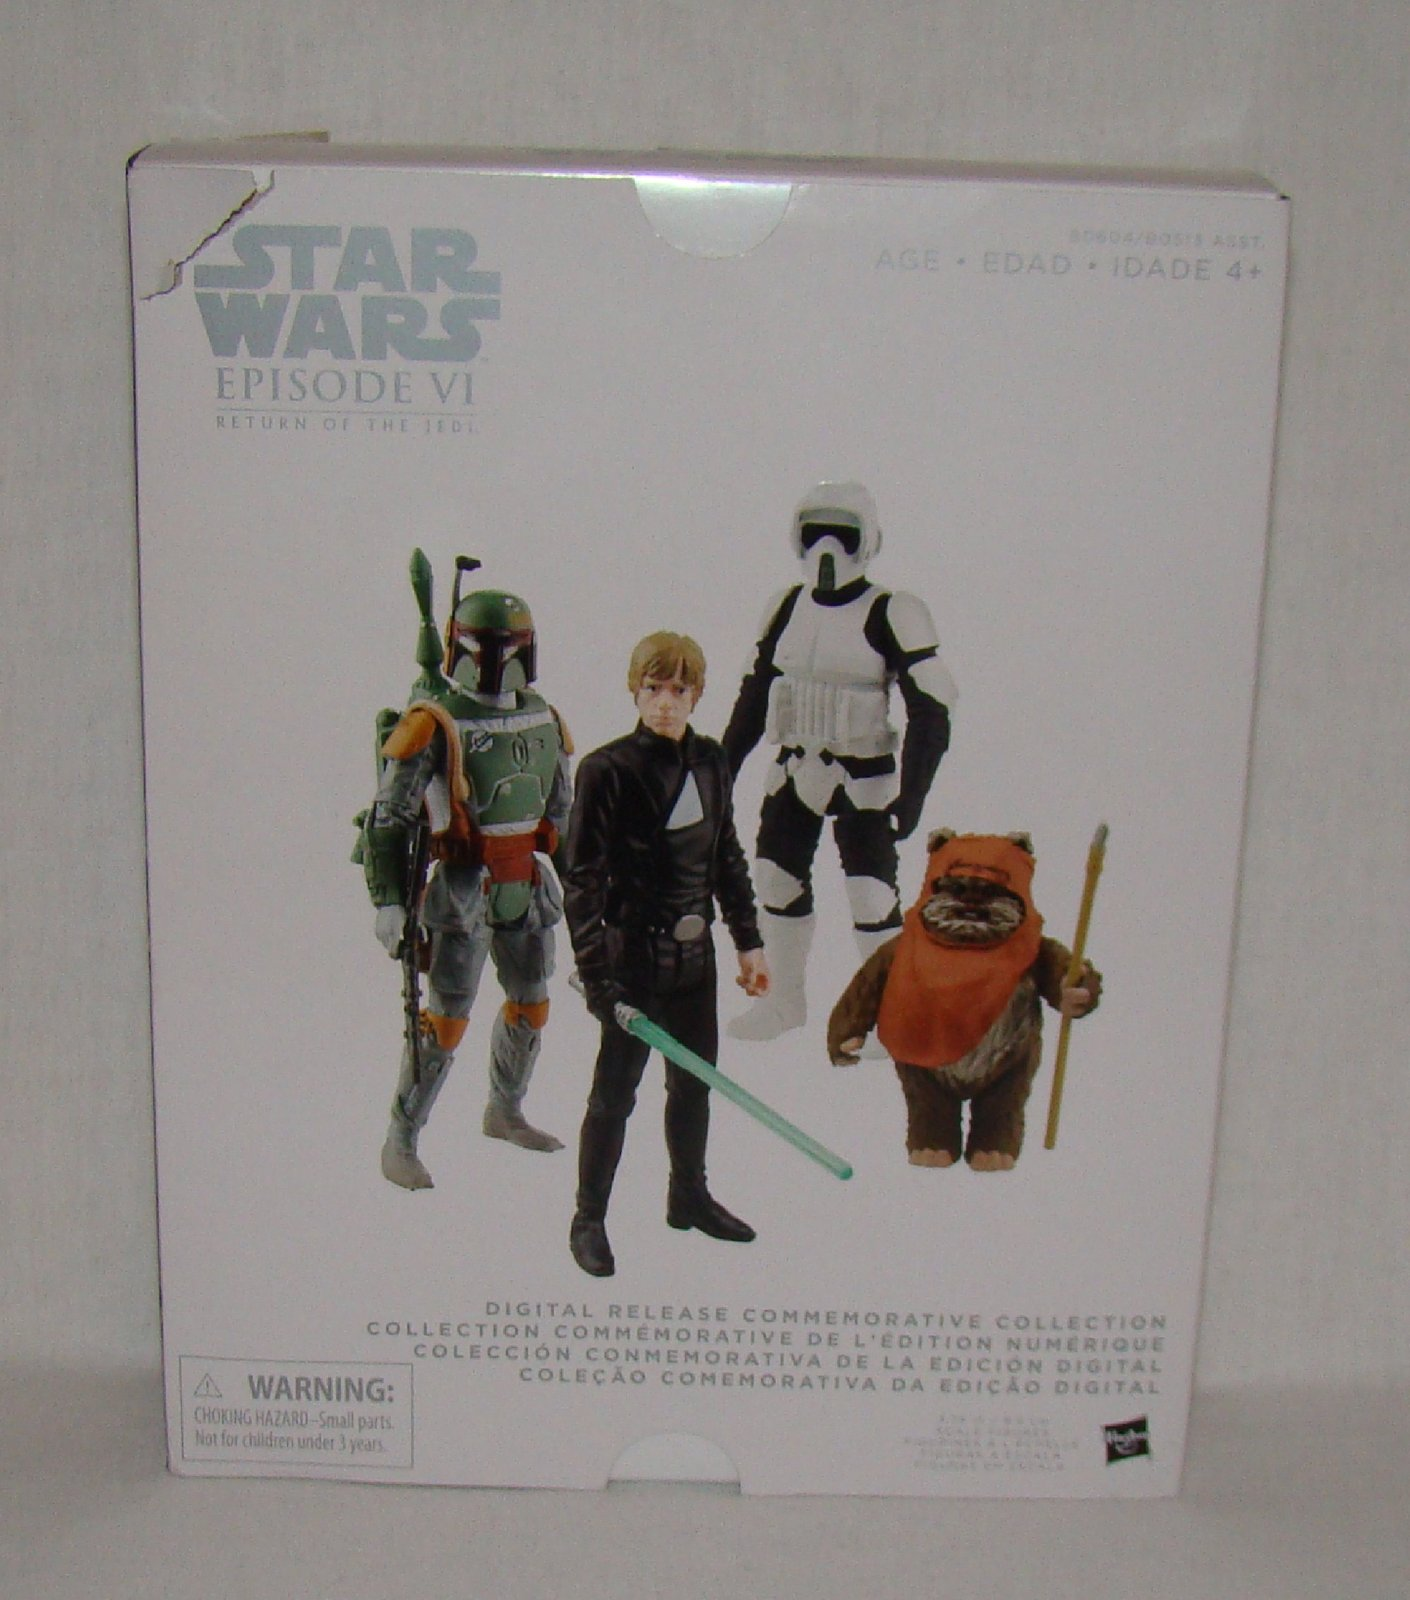 Primary image for Star Wars Digital Commemorative Collection Episode 6 - Lot 1